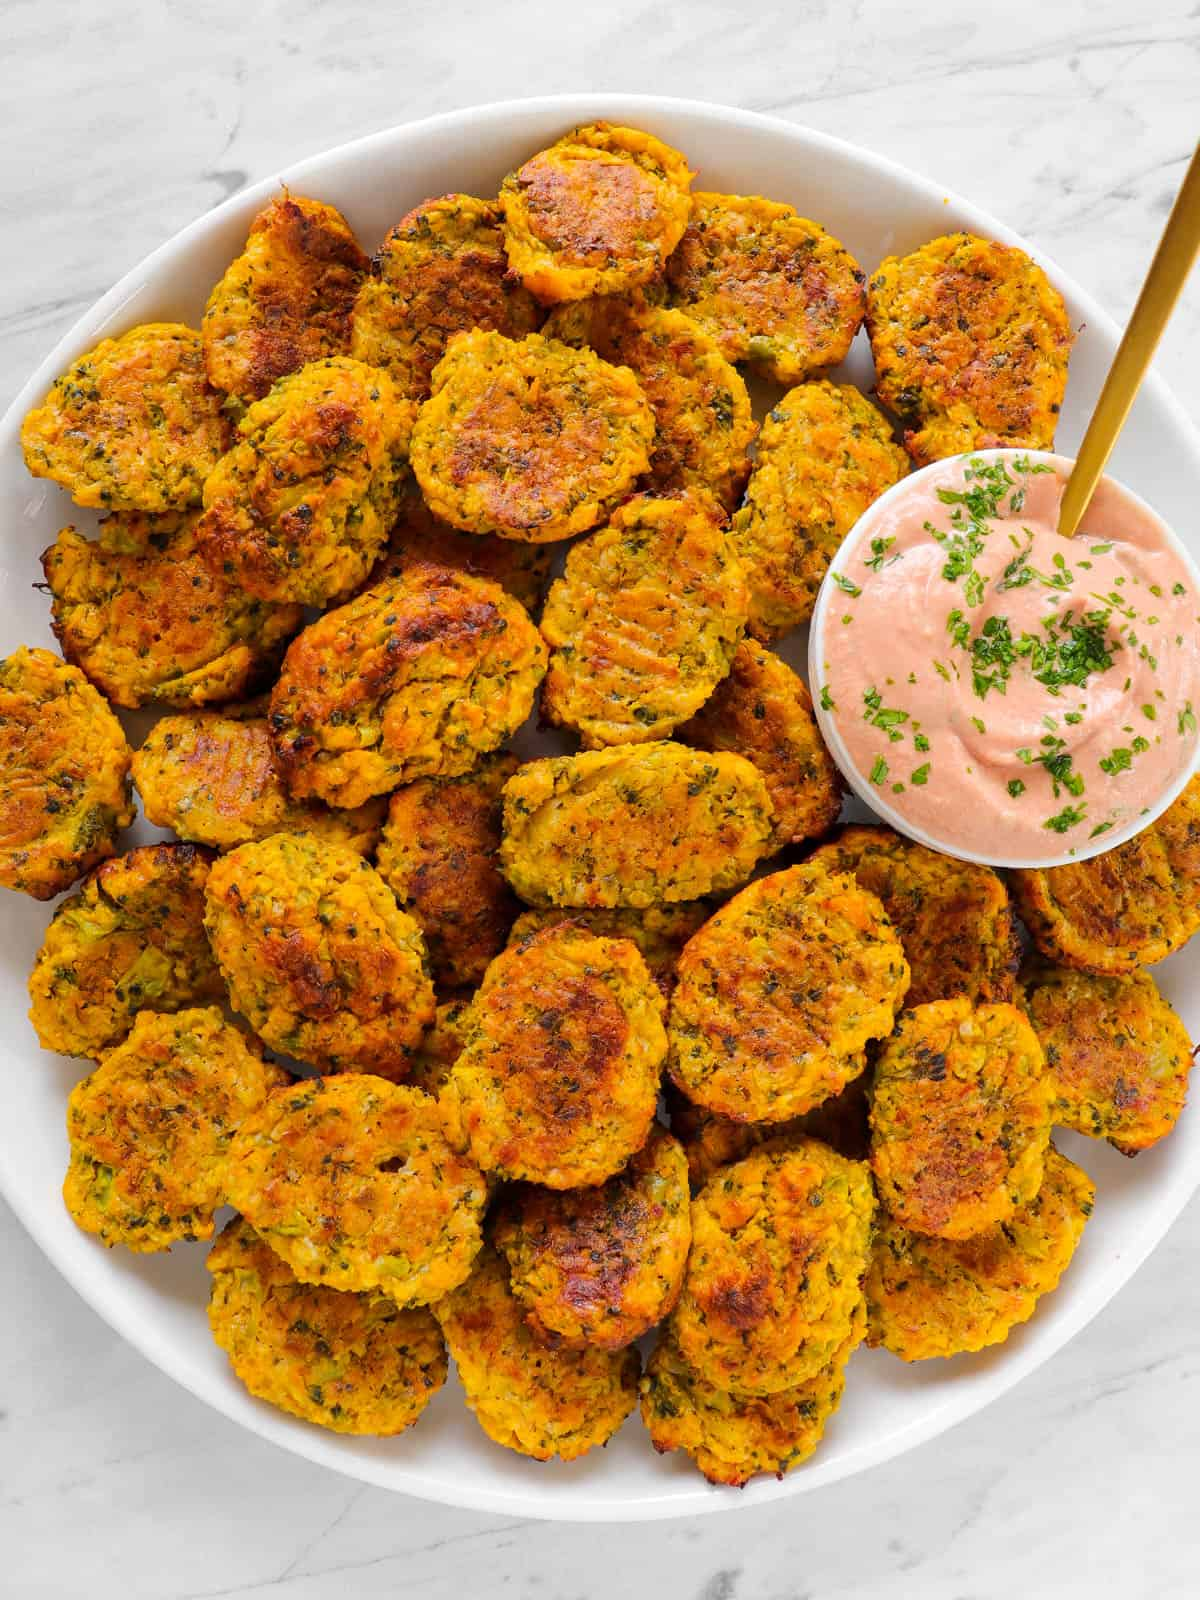 Baked broccoli pumpkin tots on a plate with tomato yoghurt sauce and golden spoon.